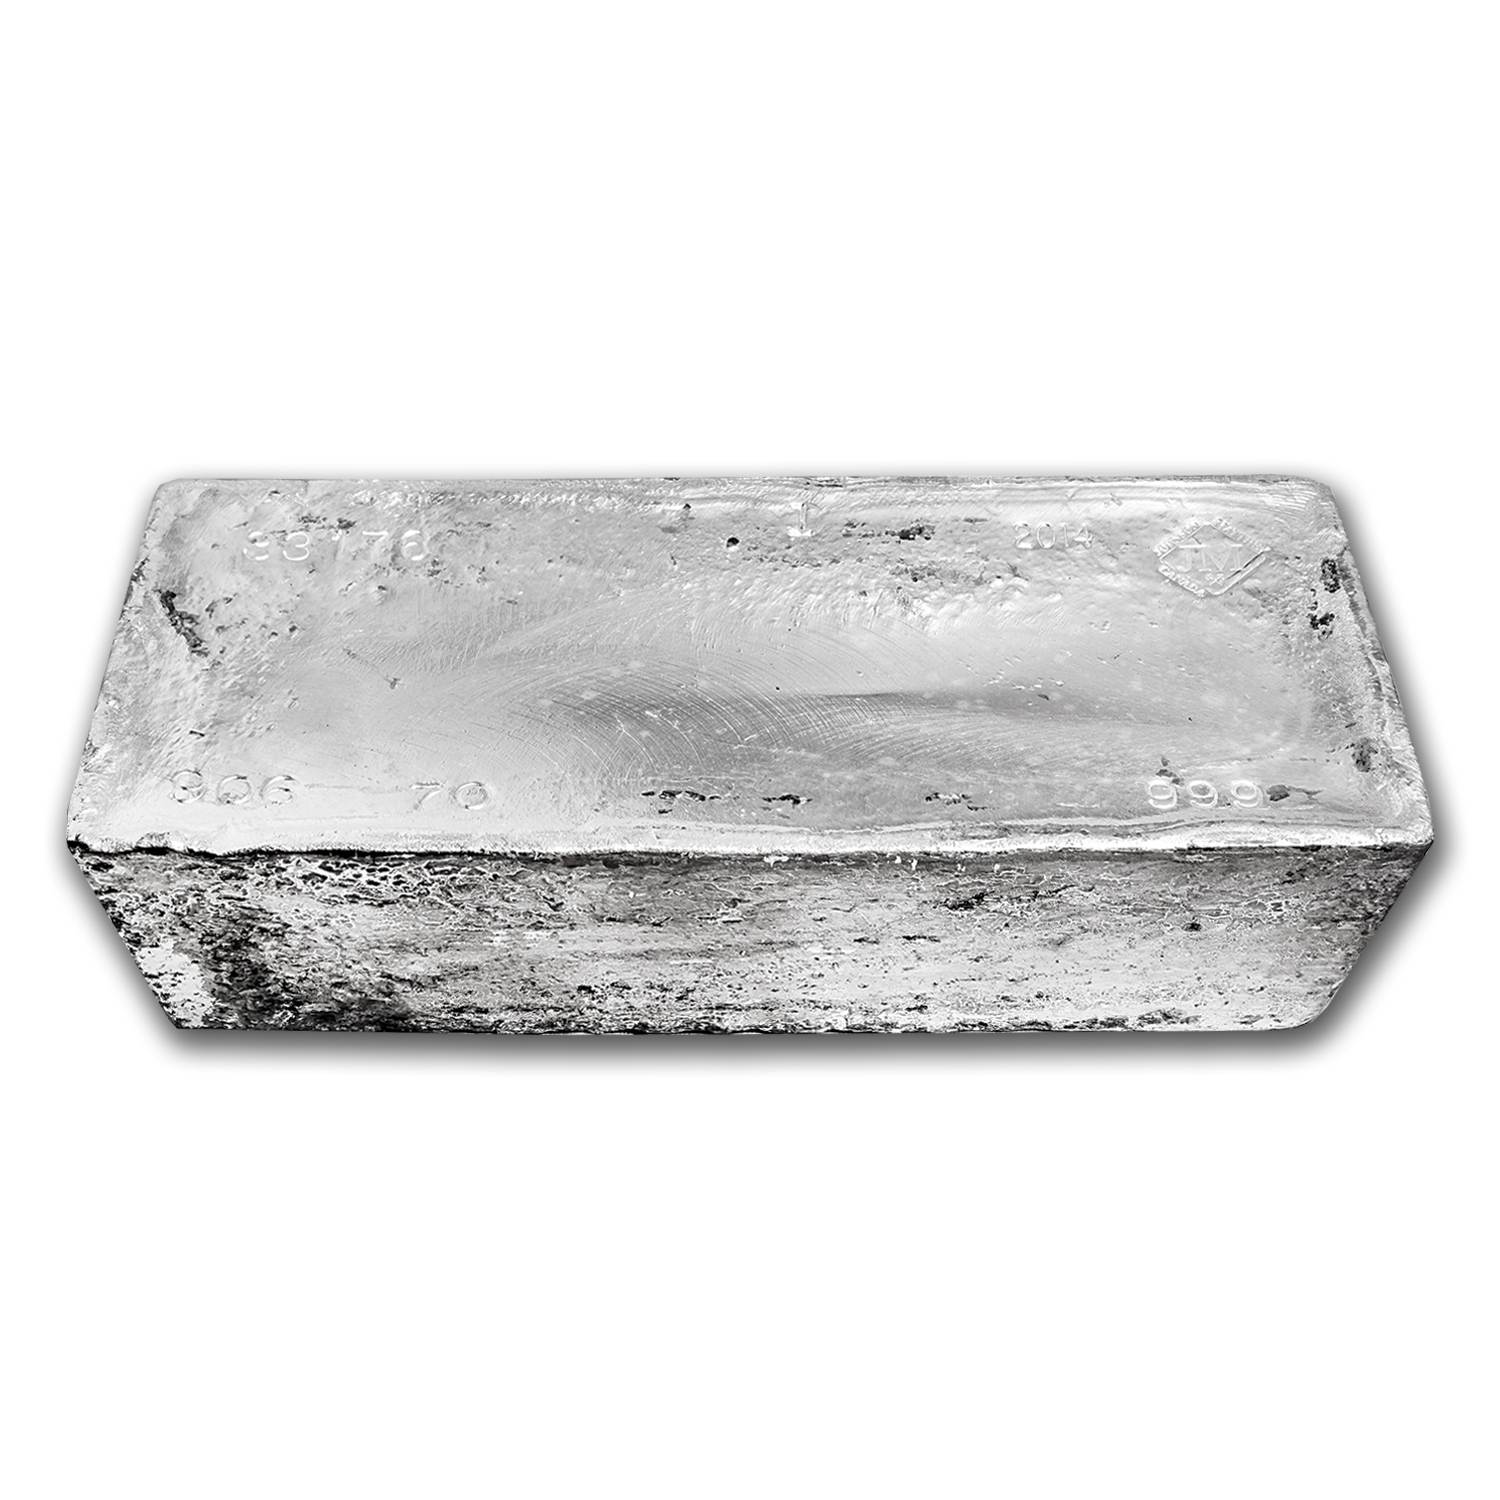 996.80 oz Silver Bar - ASARCO (#120090178-33)